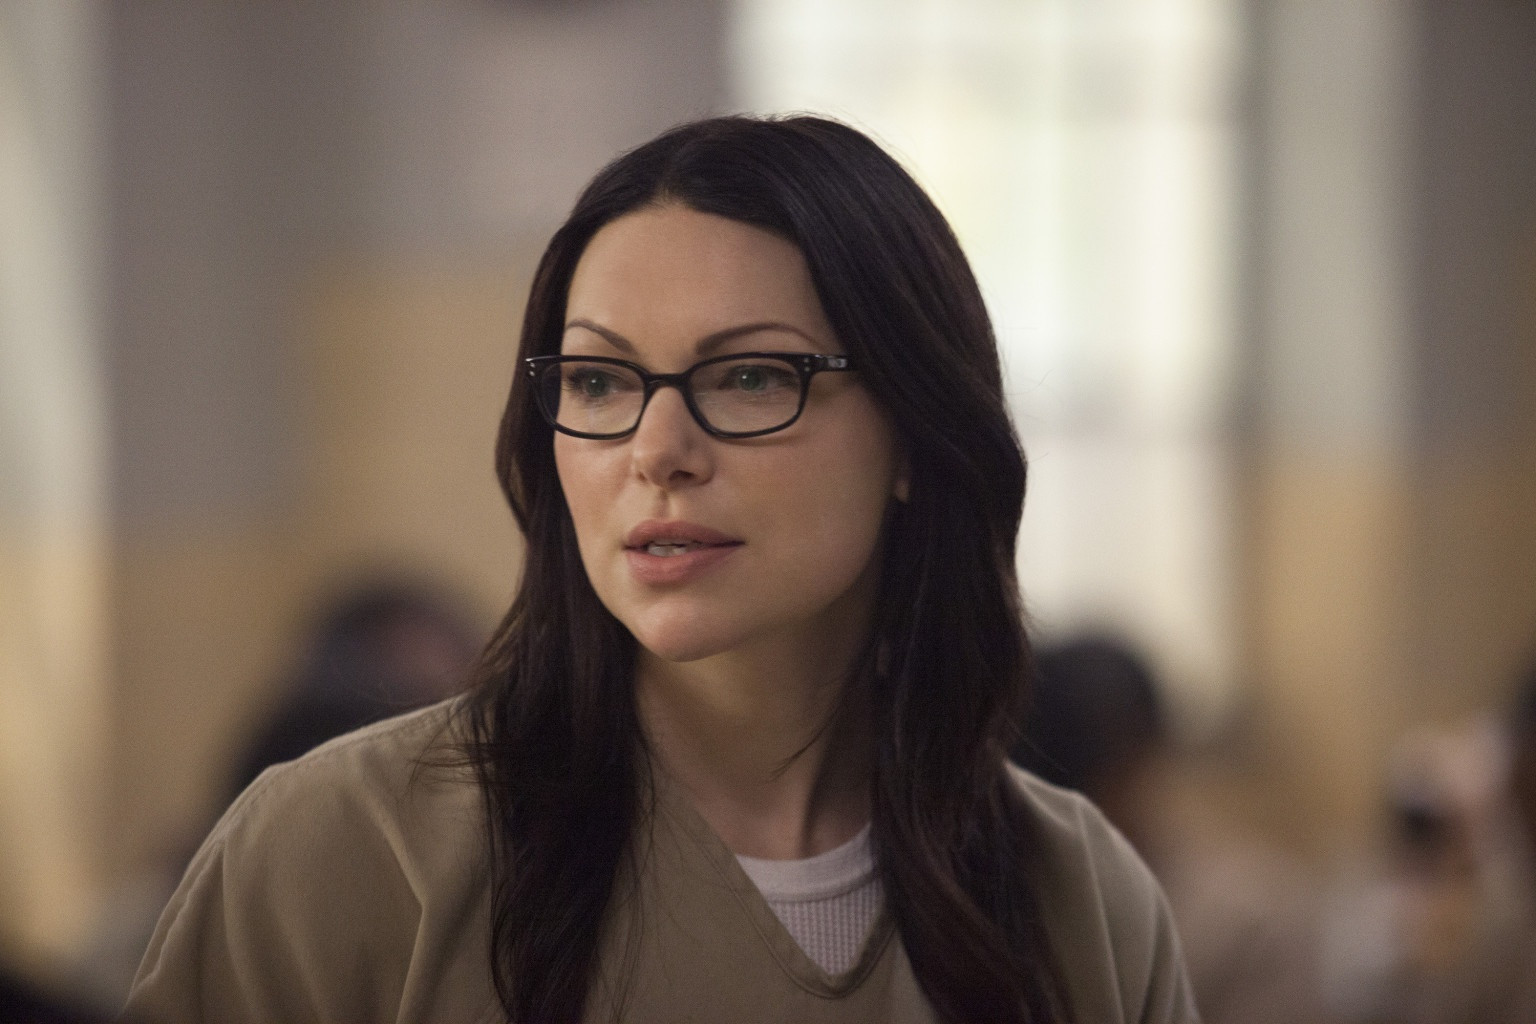 Laura Prepon opened up about the risky way she dealt with body scrutiny